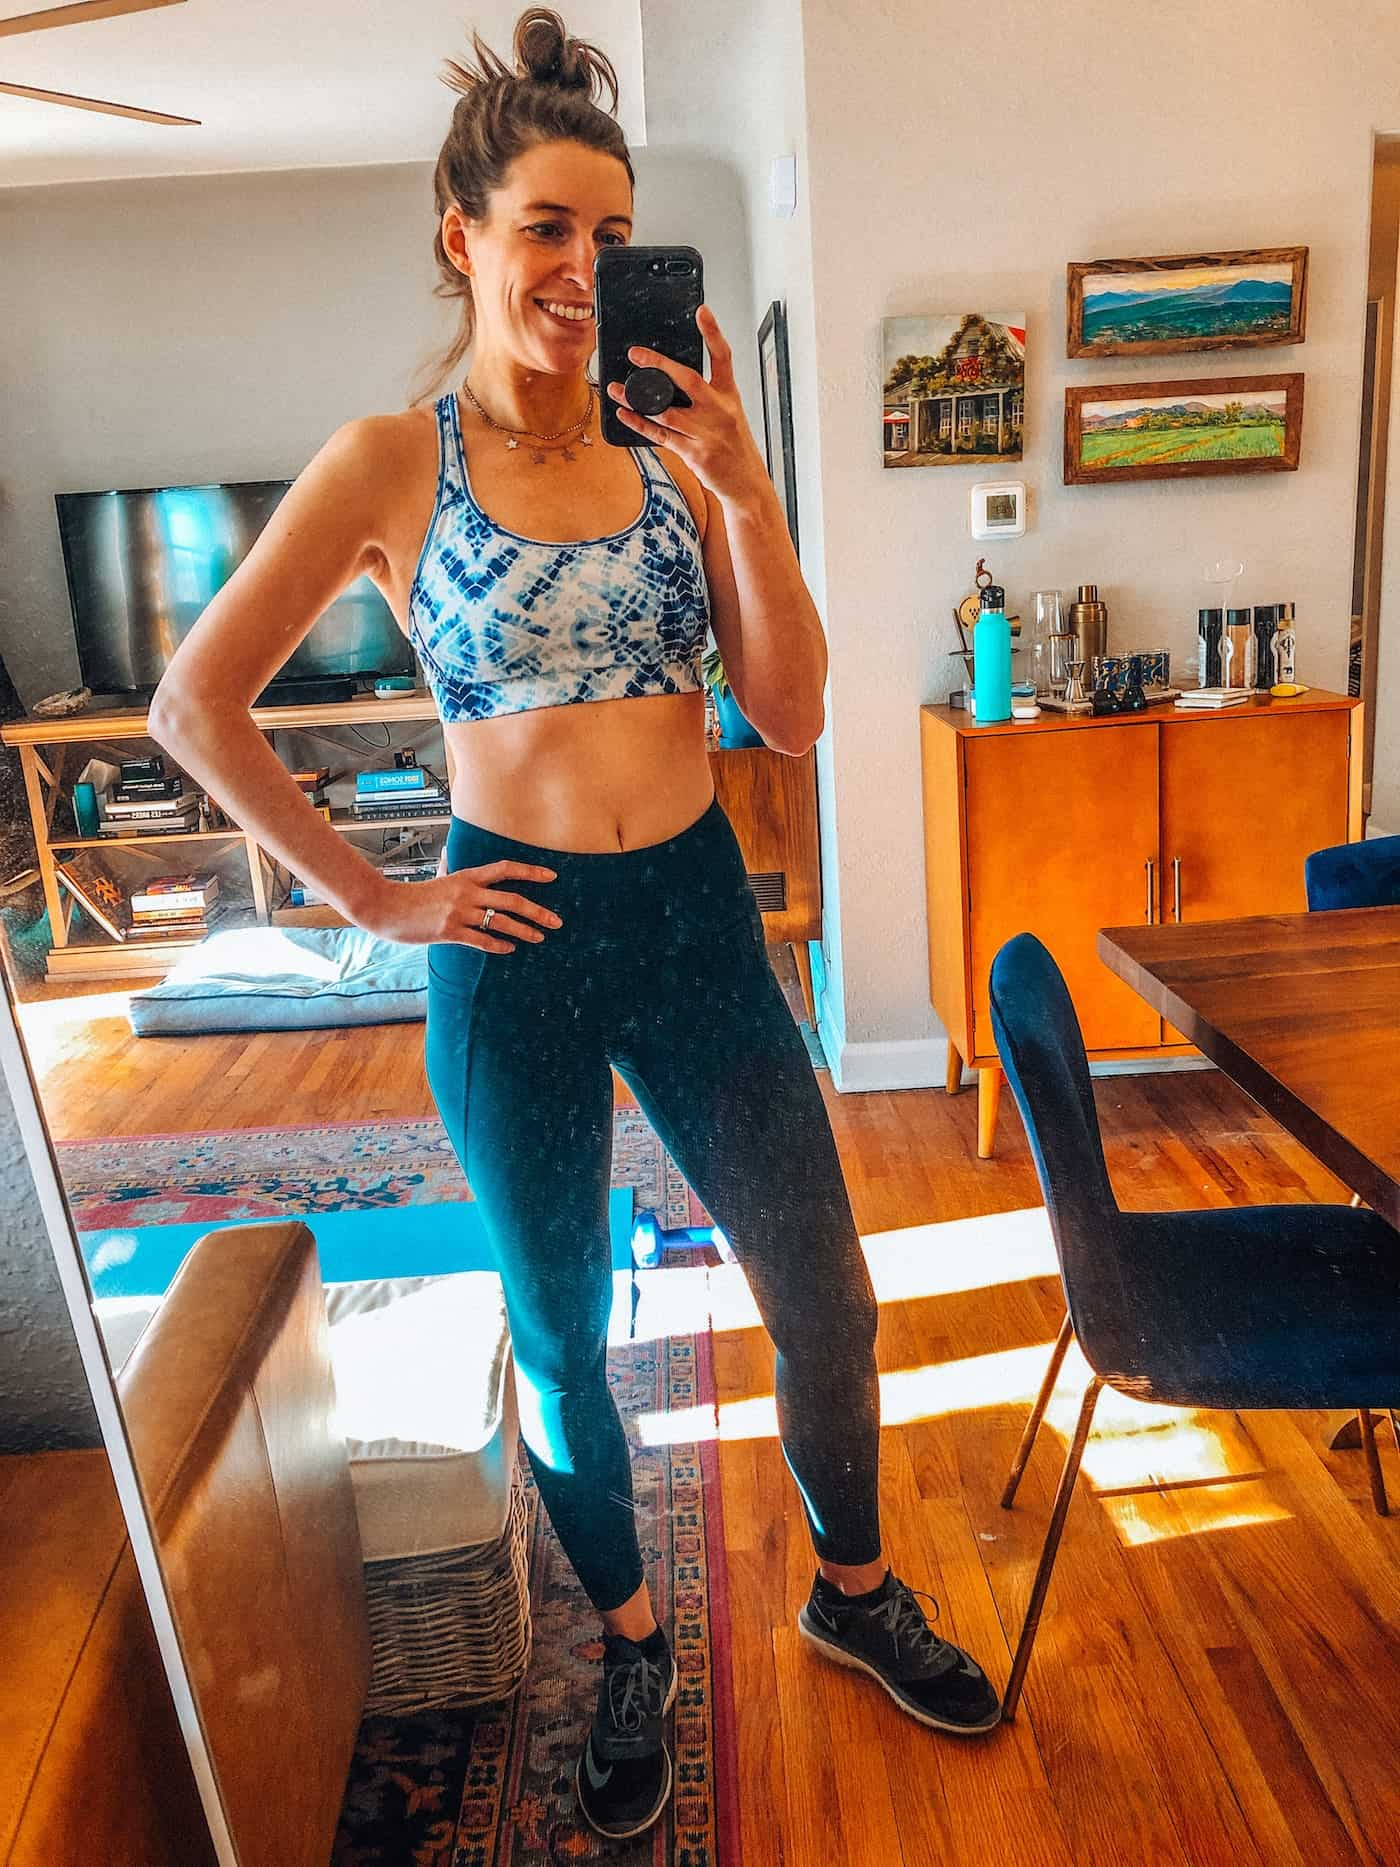 Workout Look - Tie Dye Bra and Old Navy Power Soft Leggings